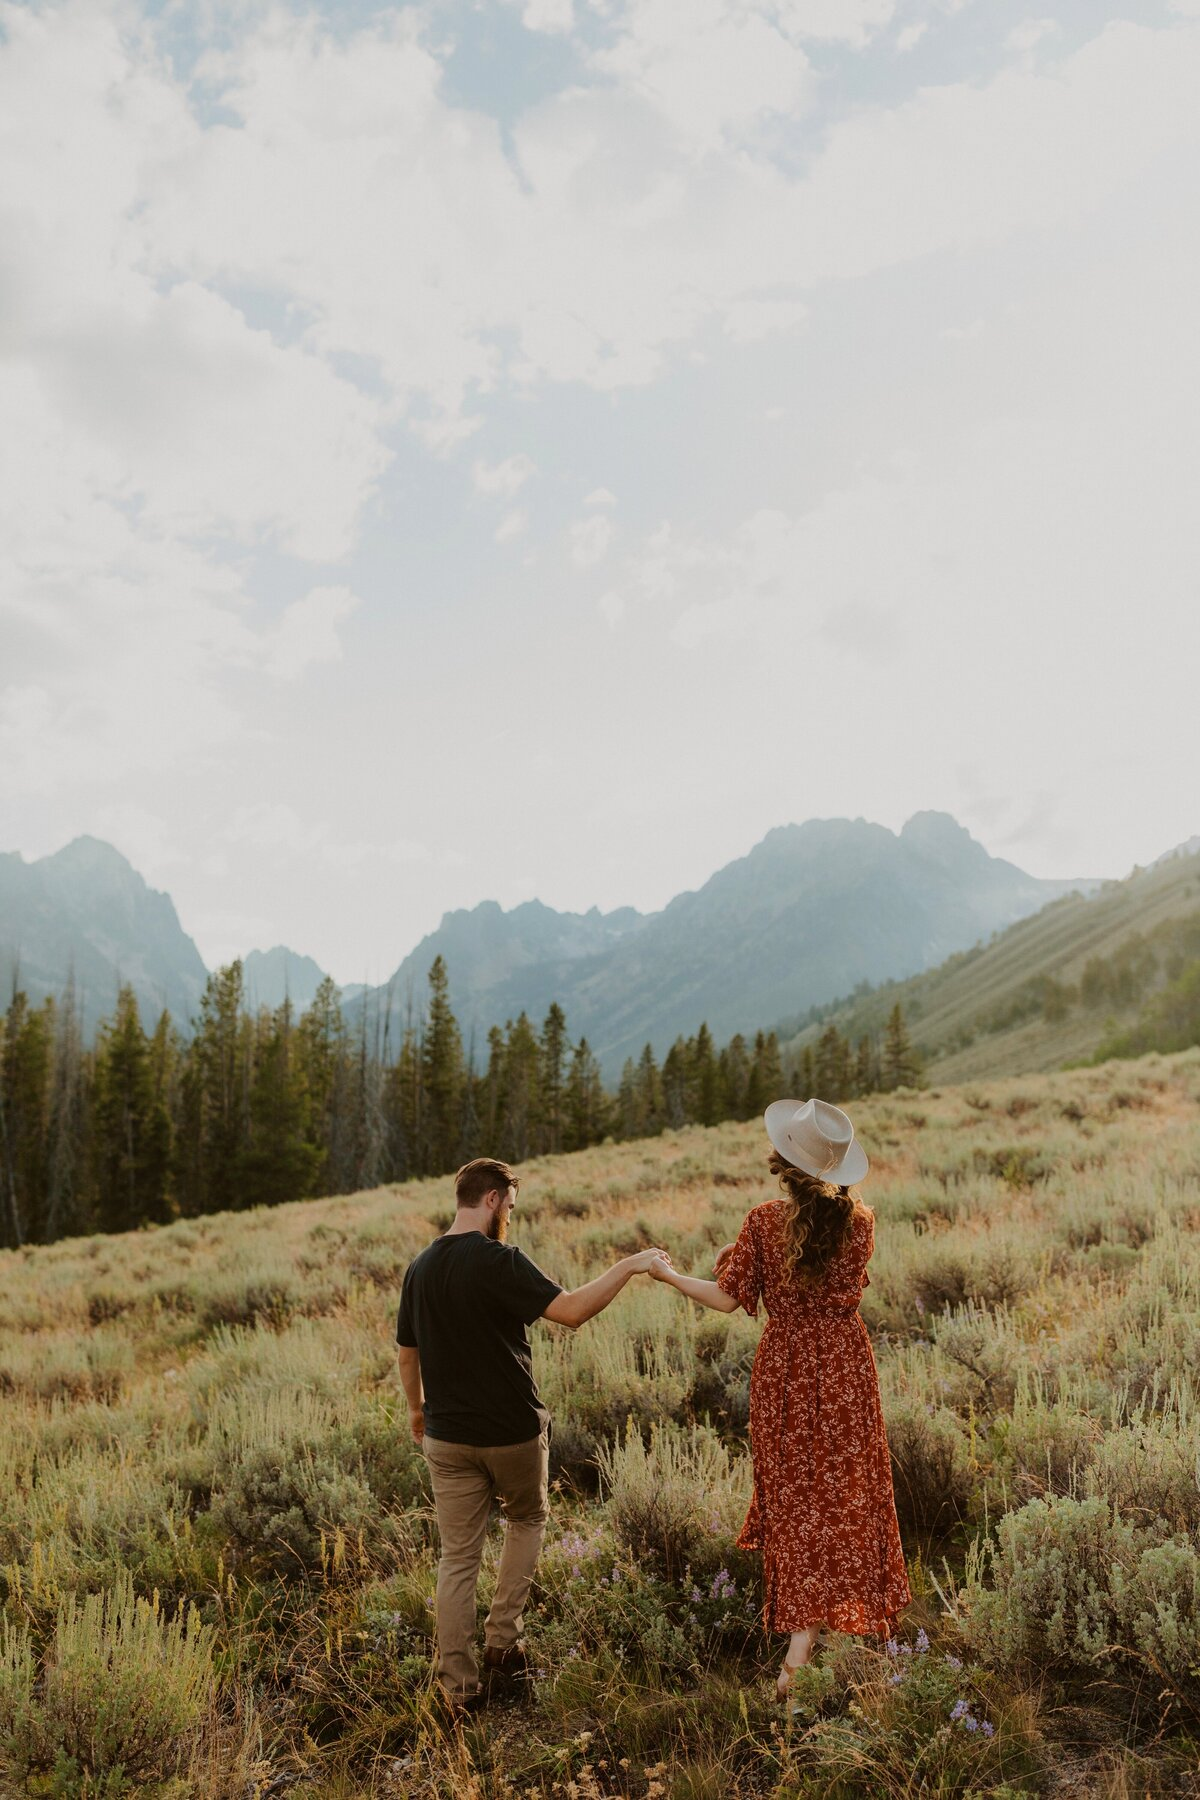 couple walking in a field in the mountains